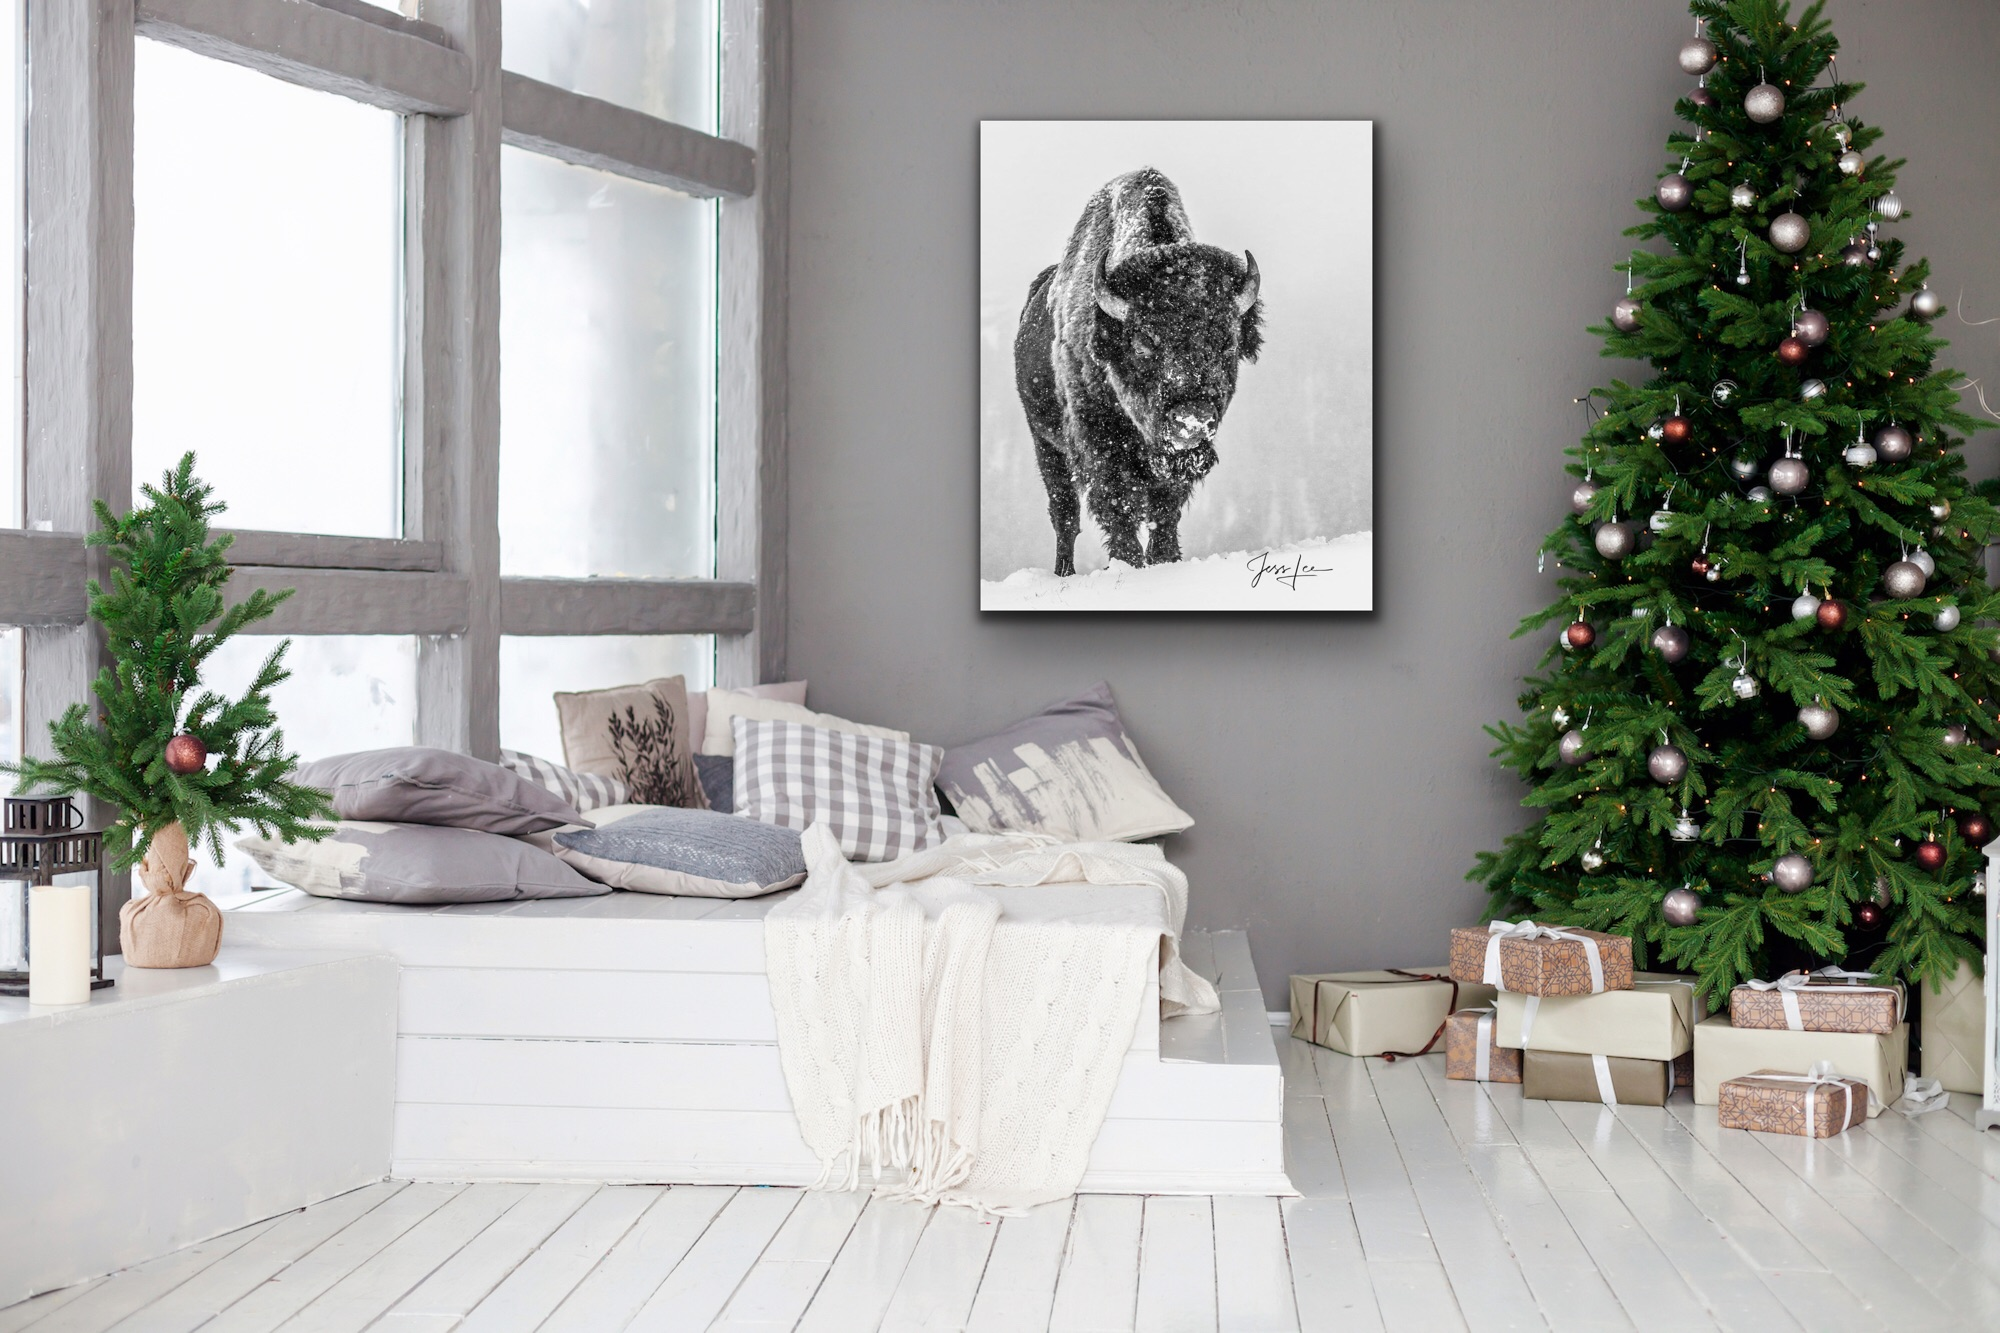 Elegant winter Bison print in Christmas decorated room.